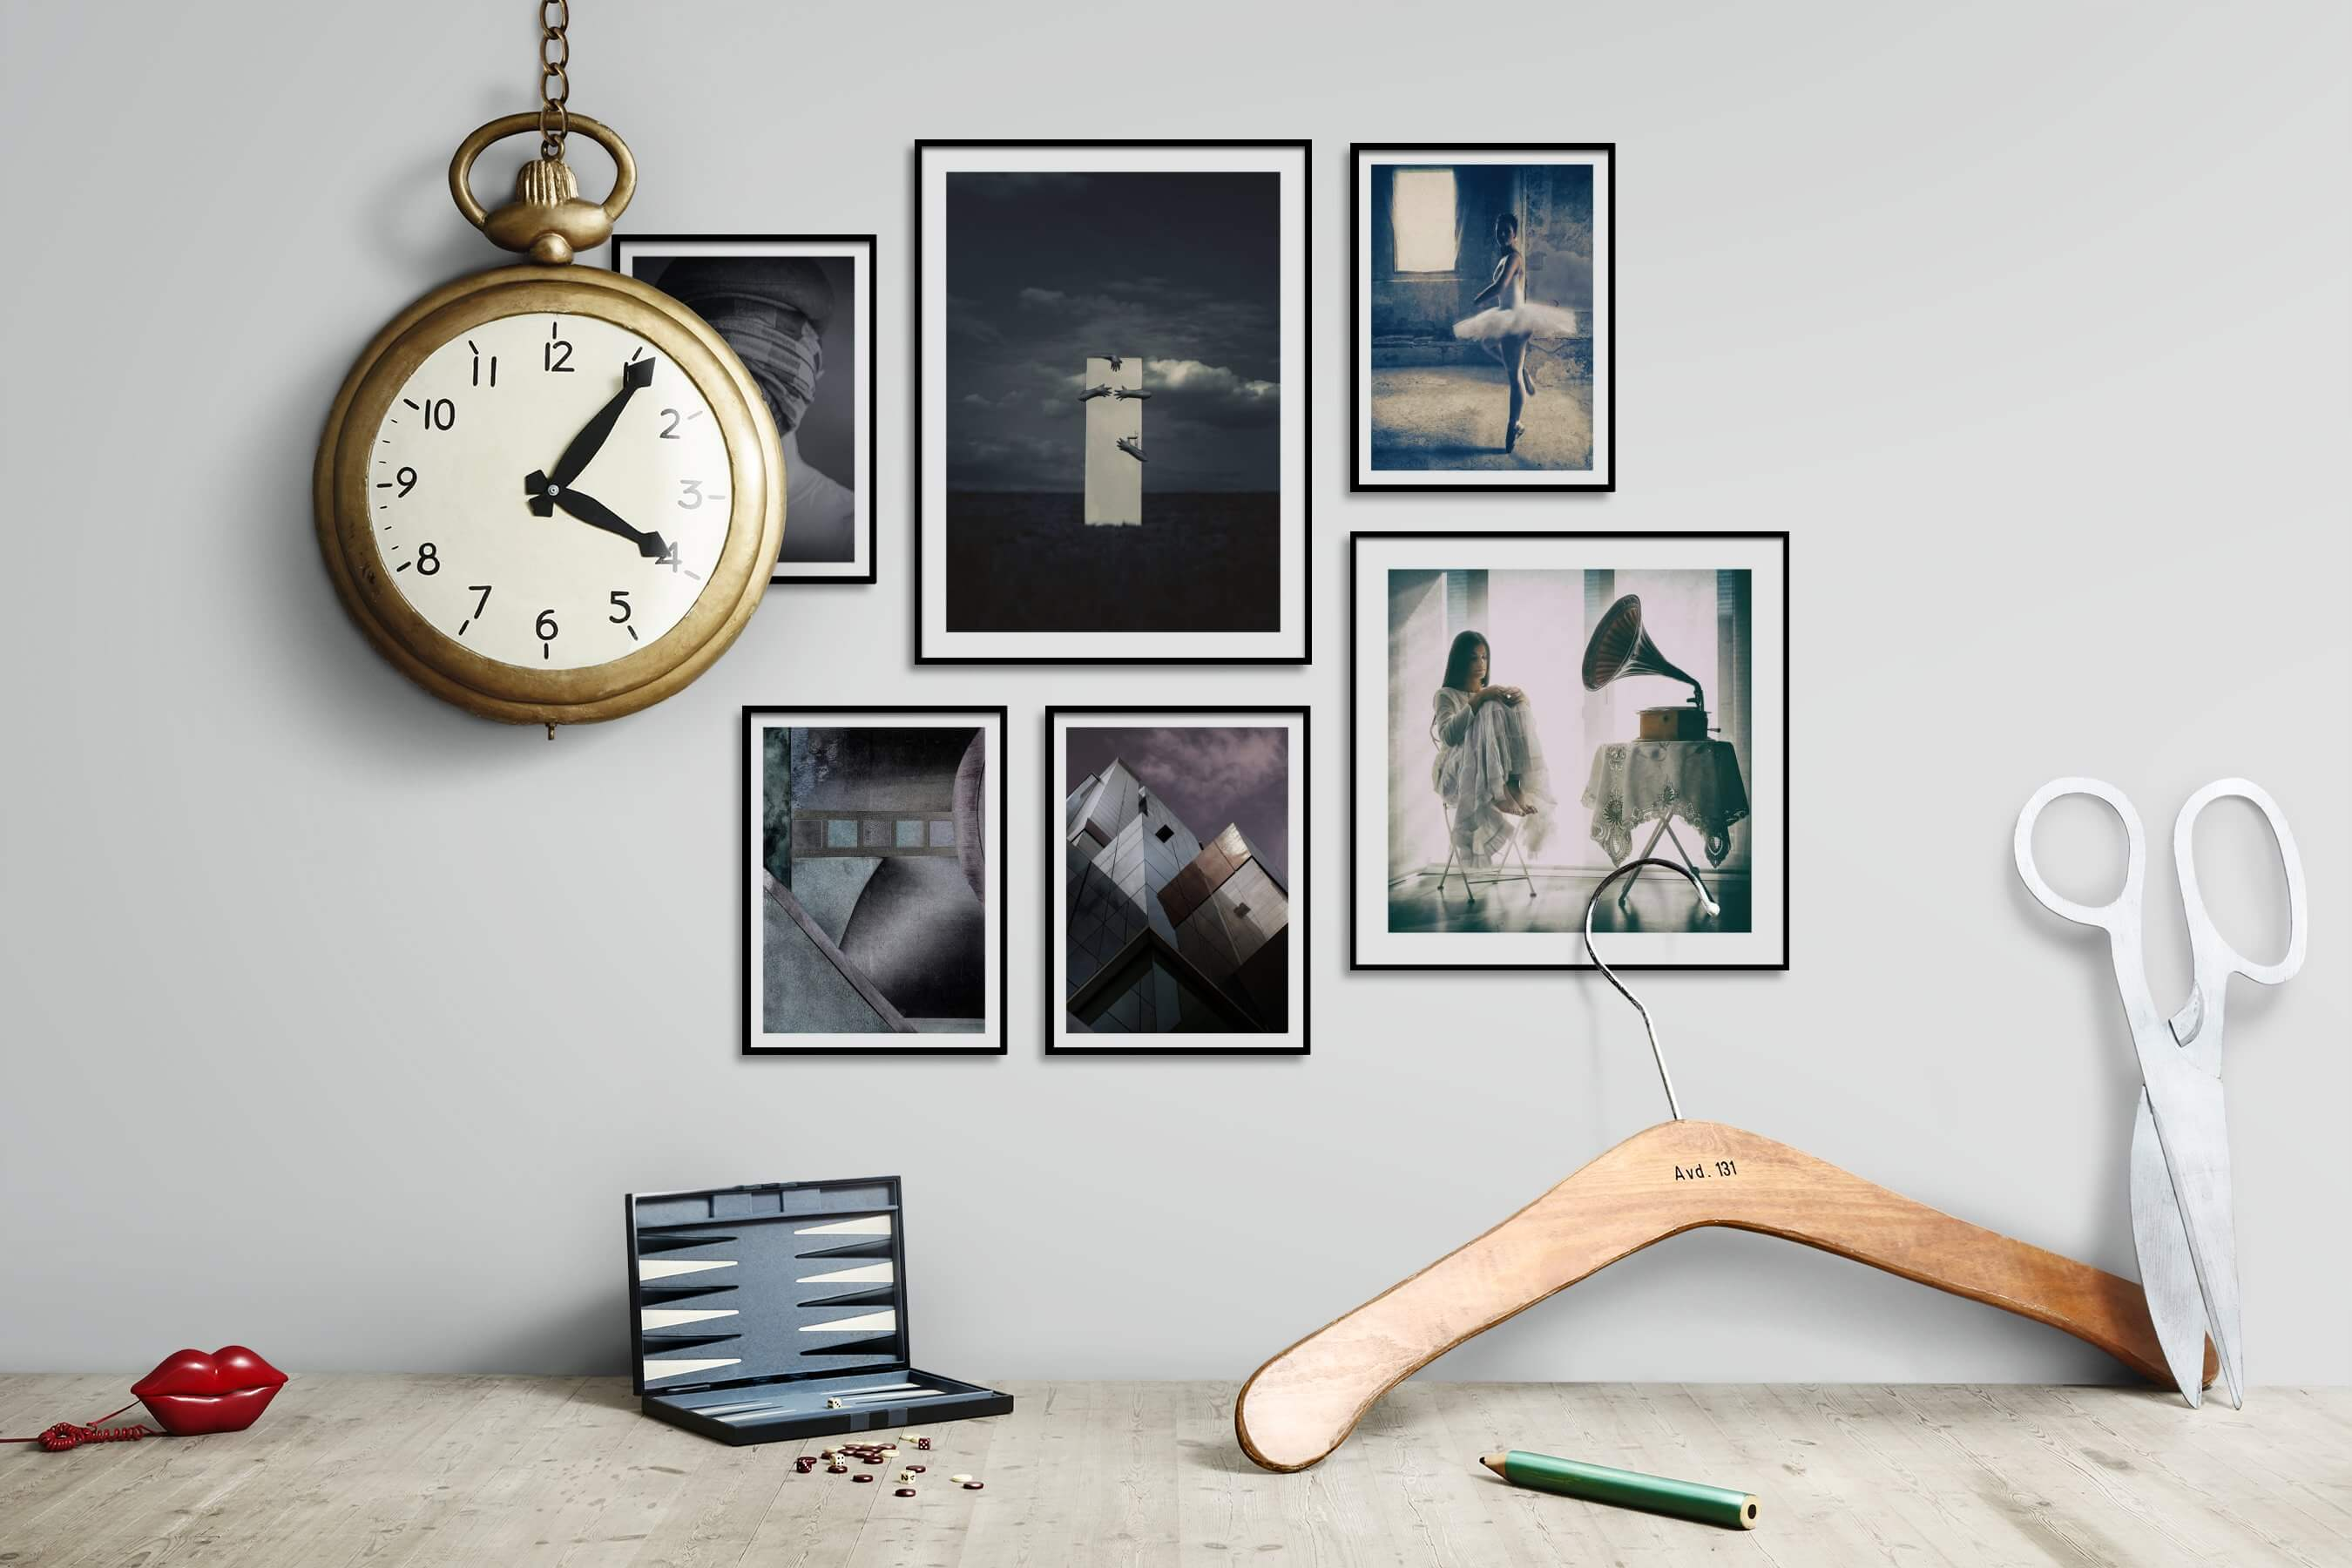 Gallery wall idea with six framed pictures arranged on a wall depicting Artsy, Black & White, For the Moderate, City Life, Fashion & Beauty, and Vintage